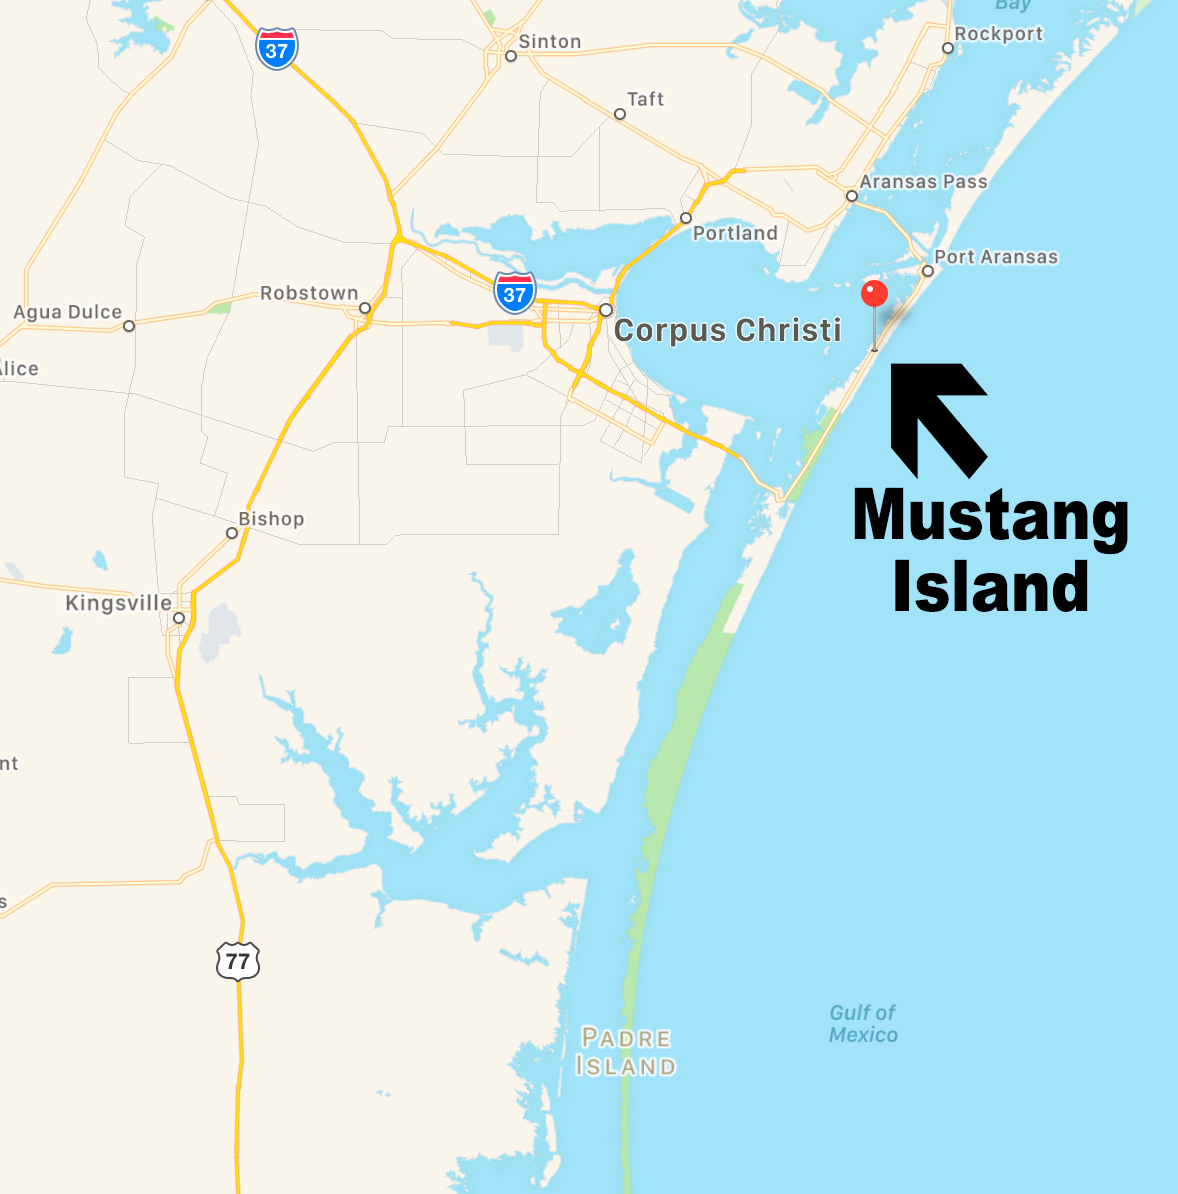 Map showing Mustang Island